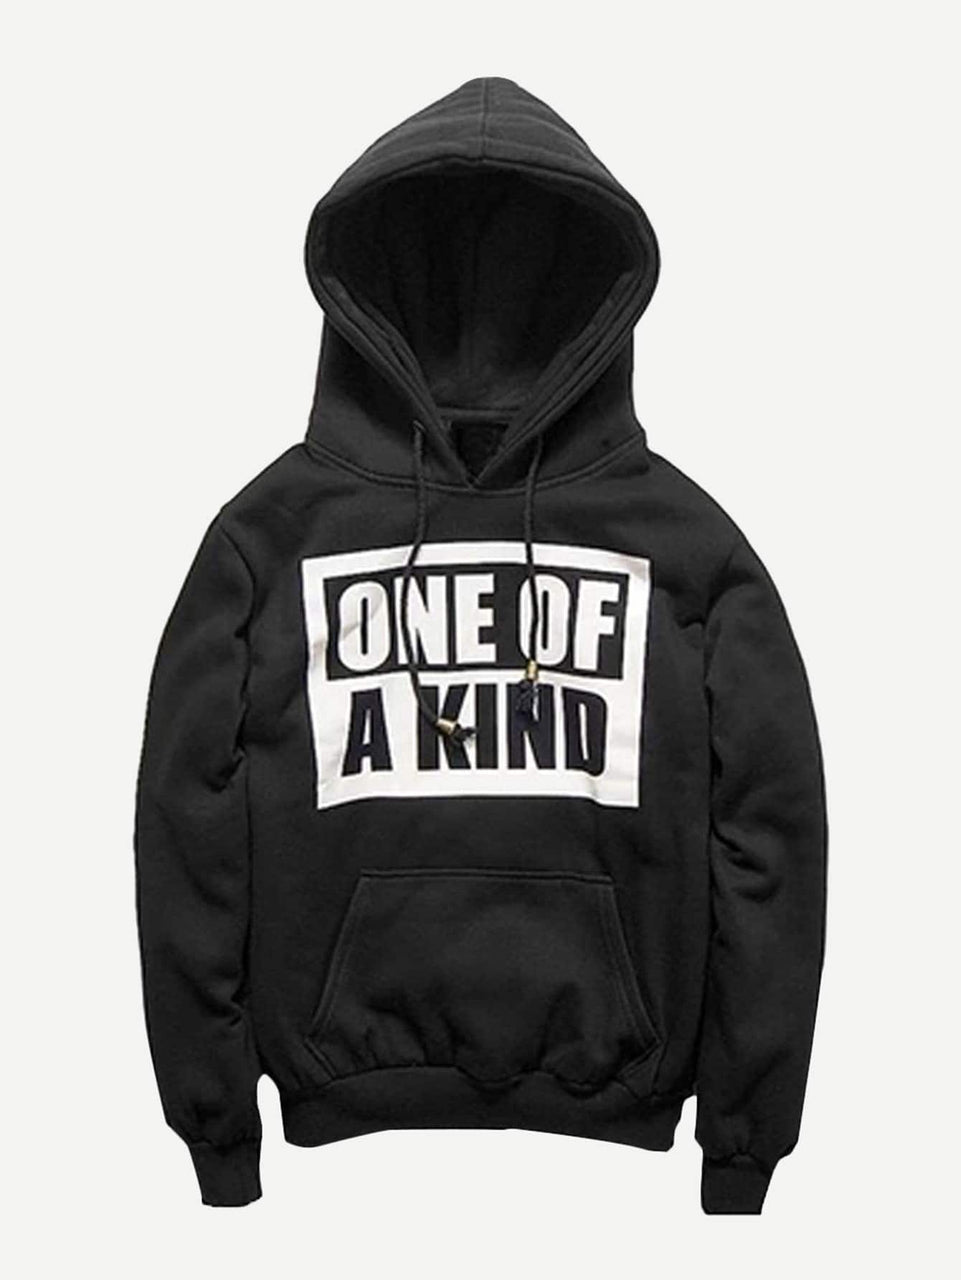 ONE OF A KIND BLK - MIXT Apparel